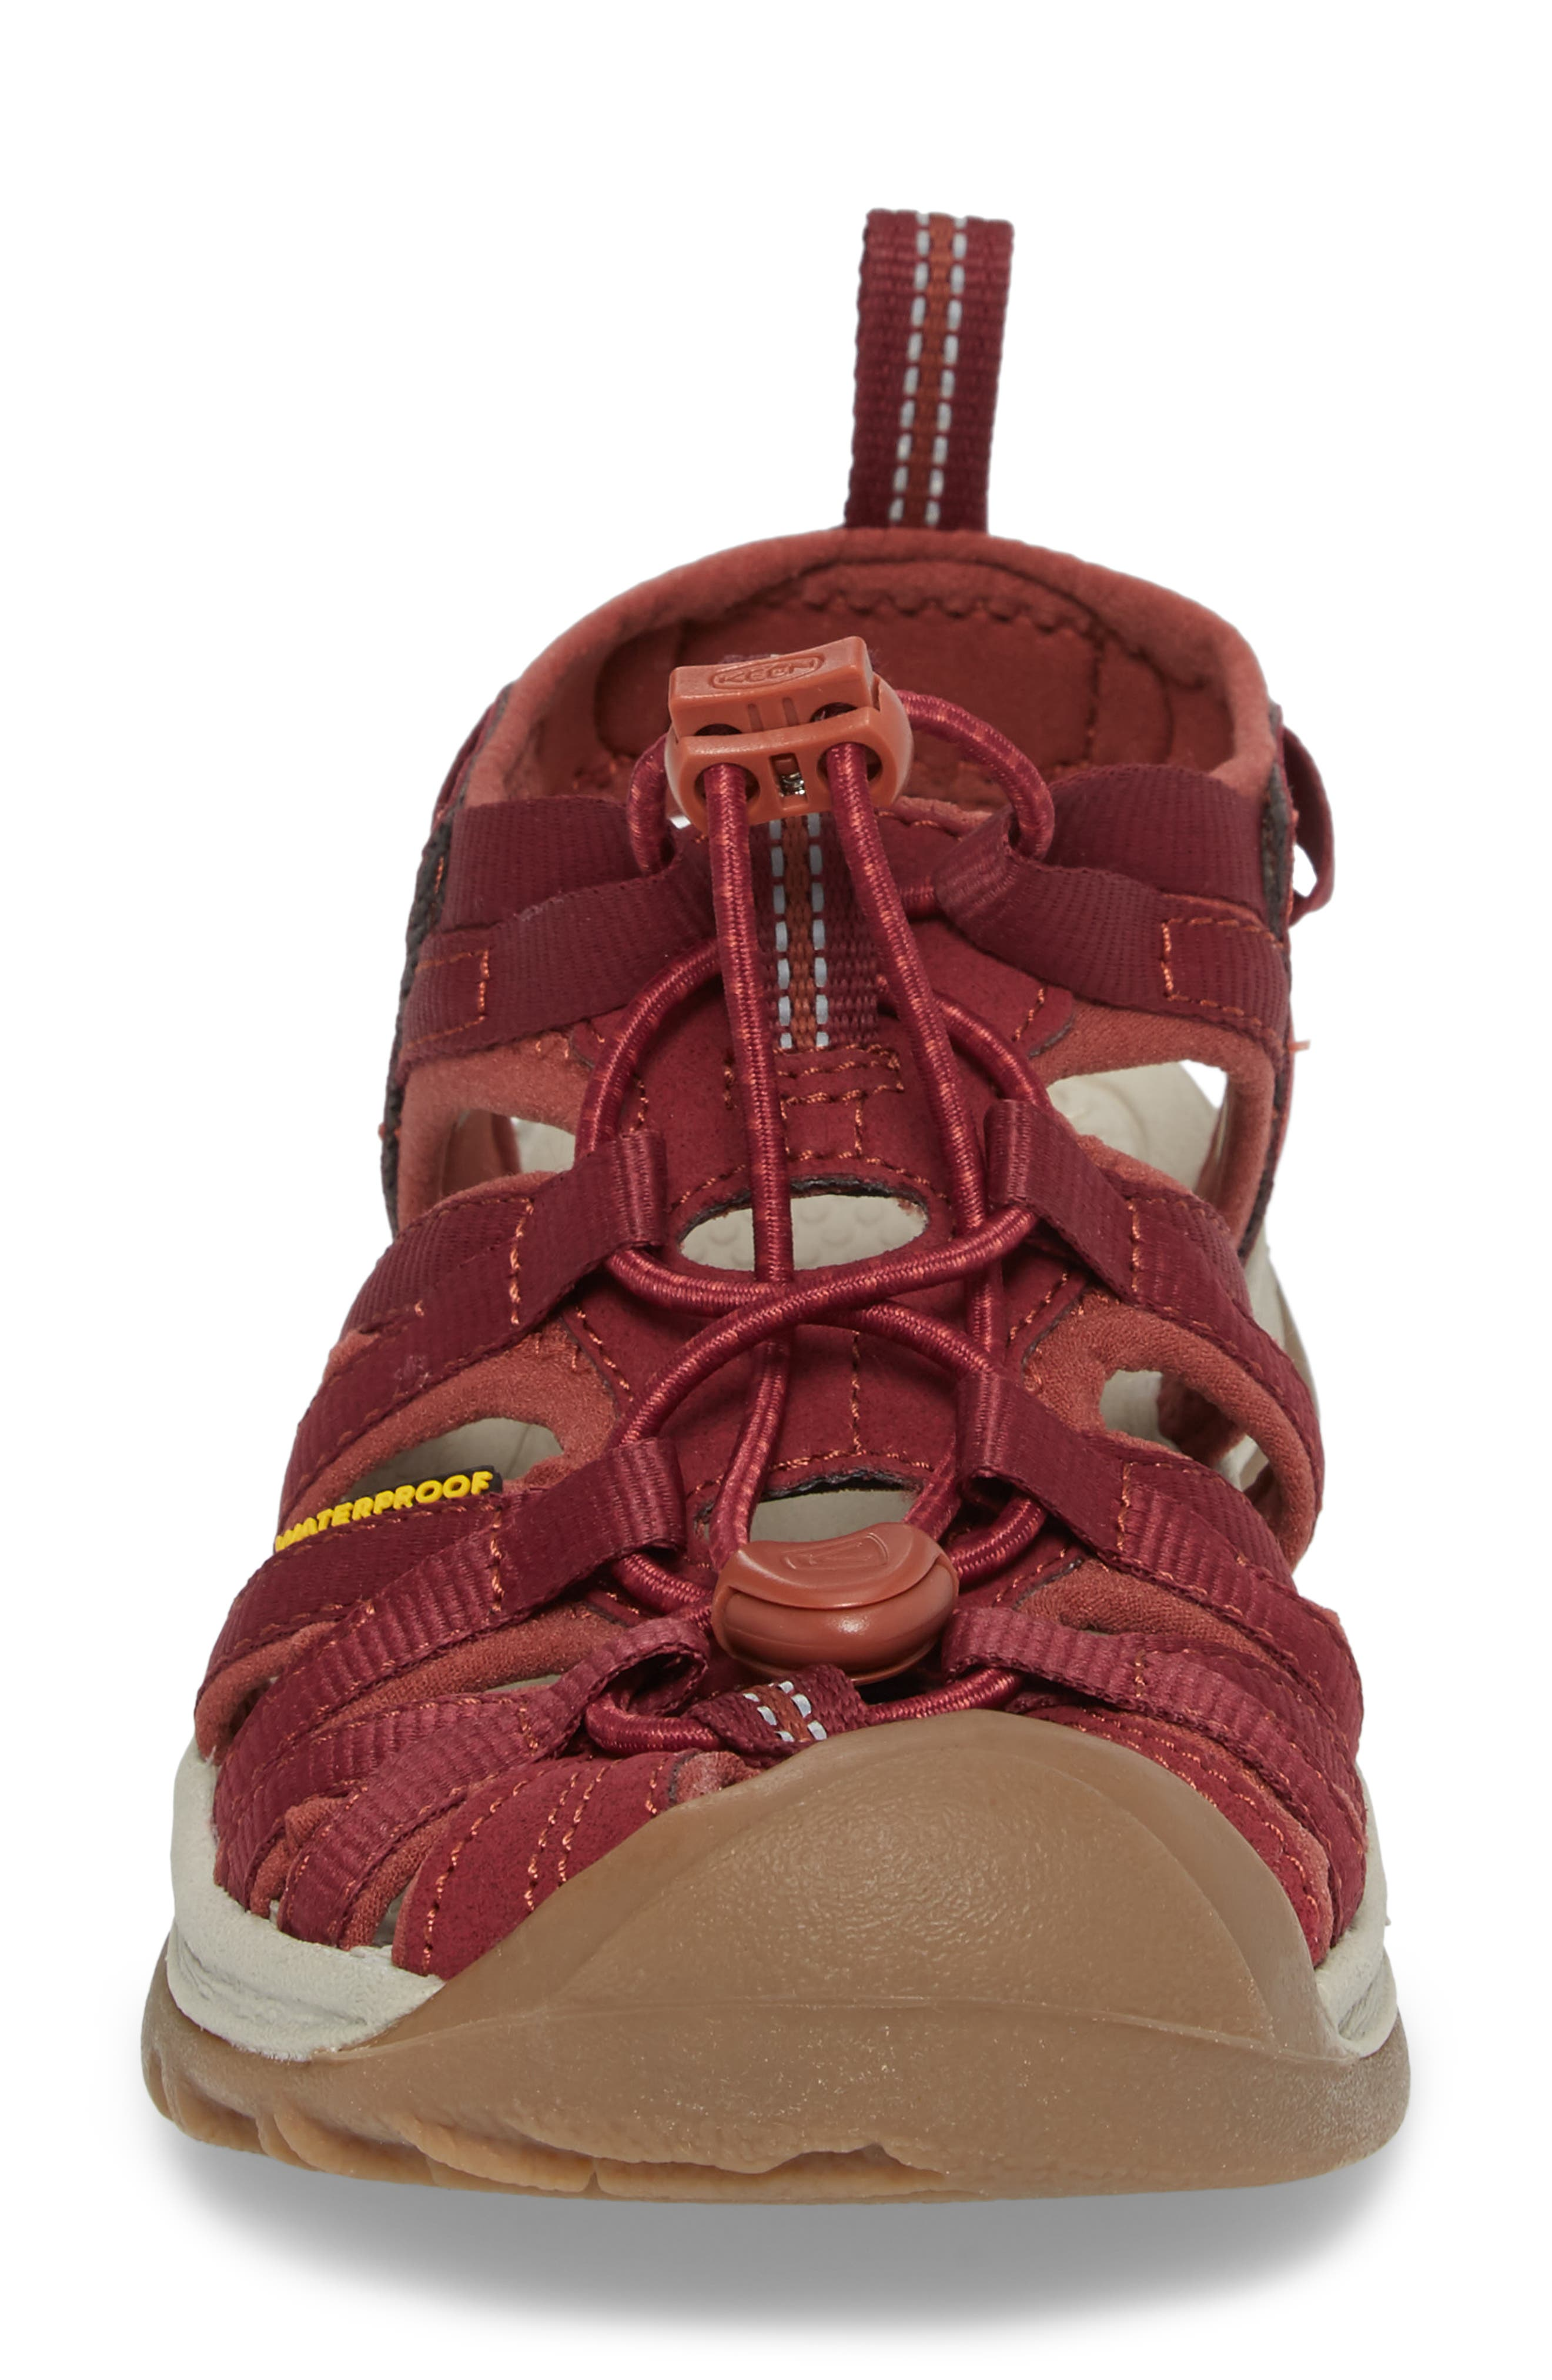 'Whisper' Water Friendly Sport Sandal,                             Alternate thumbnail 4, color,                             Rhododendron/ Marsala